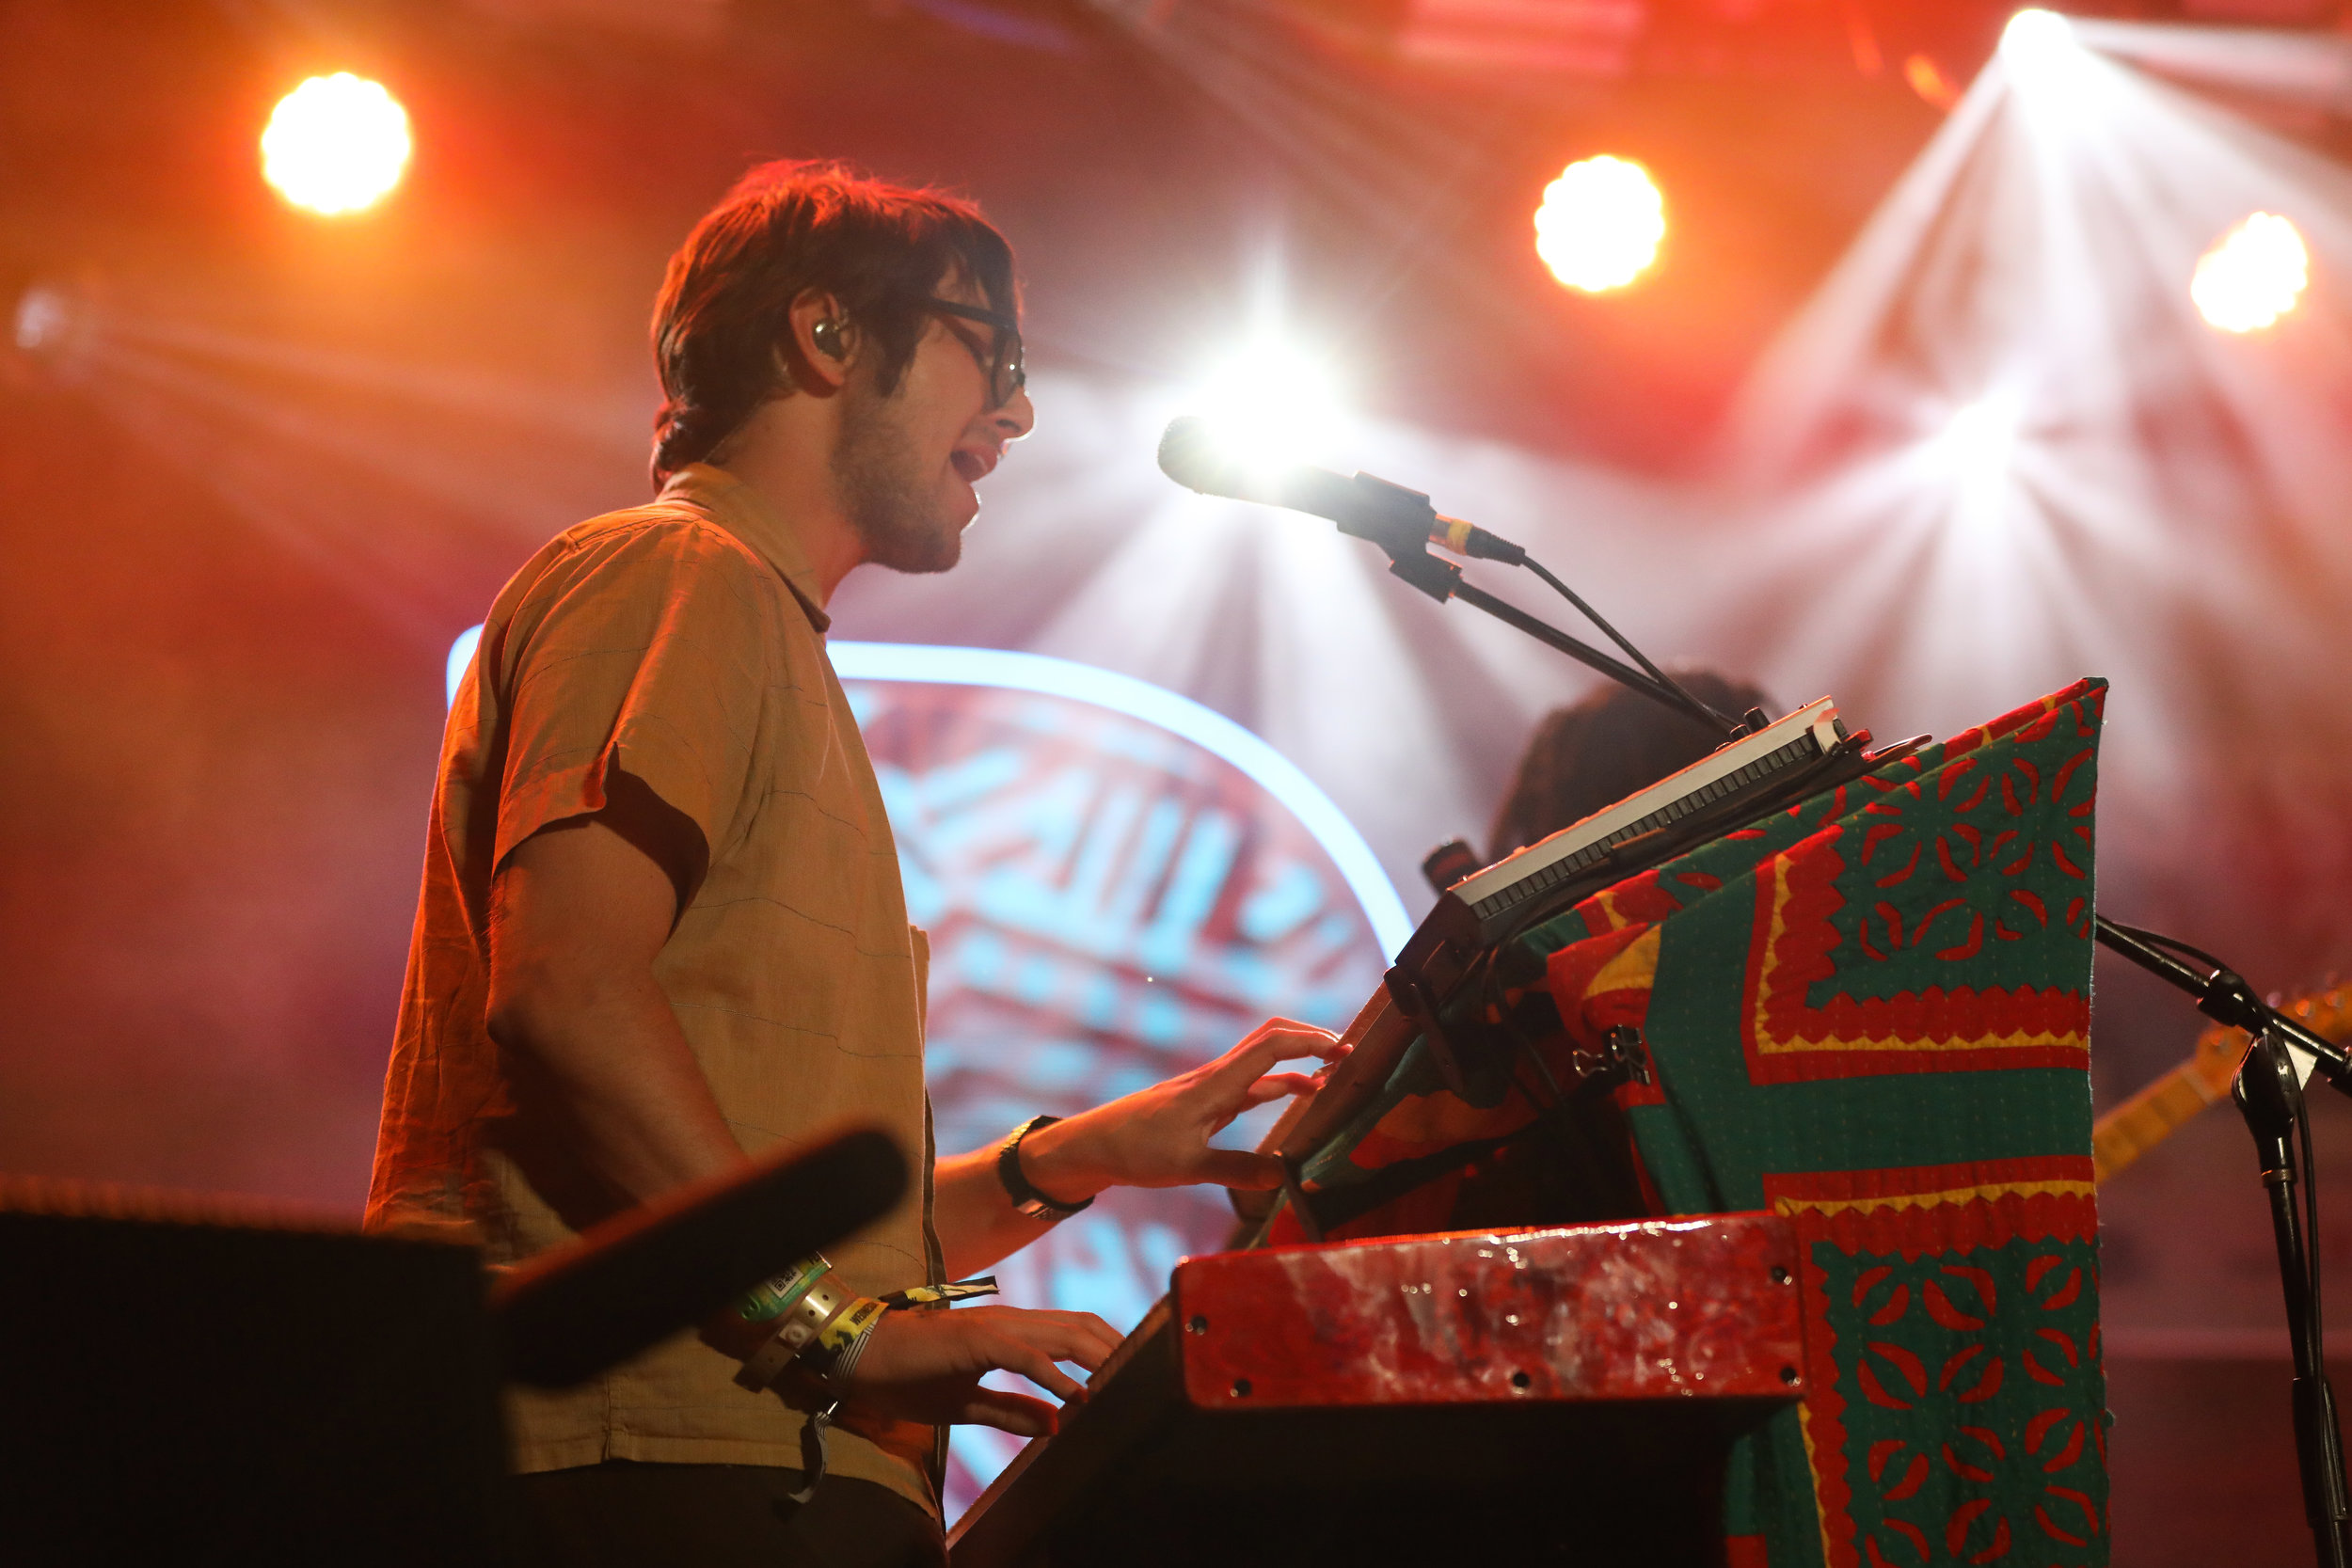 Lewis Del Mar performed at the Pandora stage March 15, 2017 during SXSW in Austin. Photo by Alyson McClaran